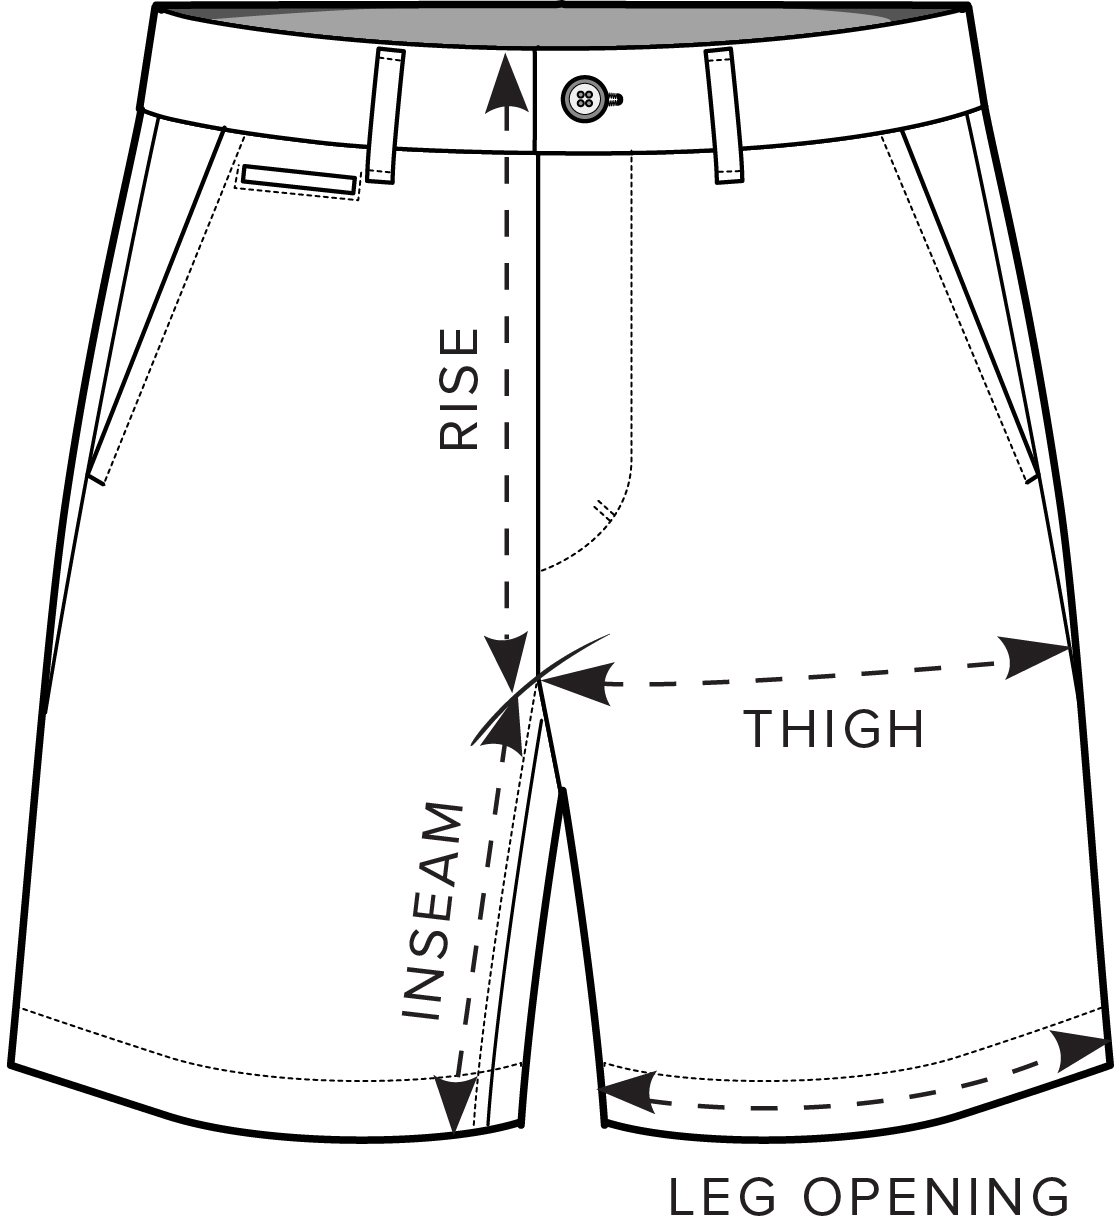 Shorts Measurement Guide